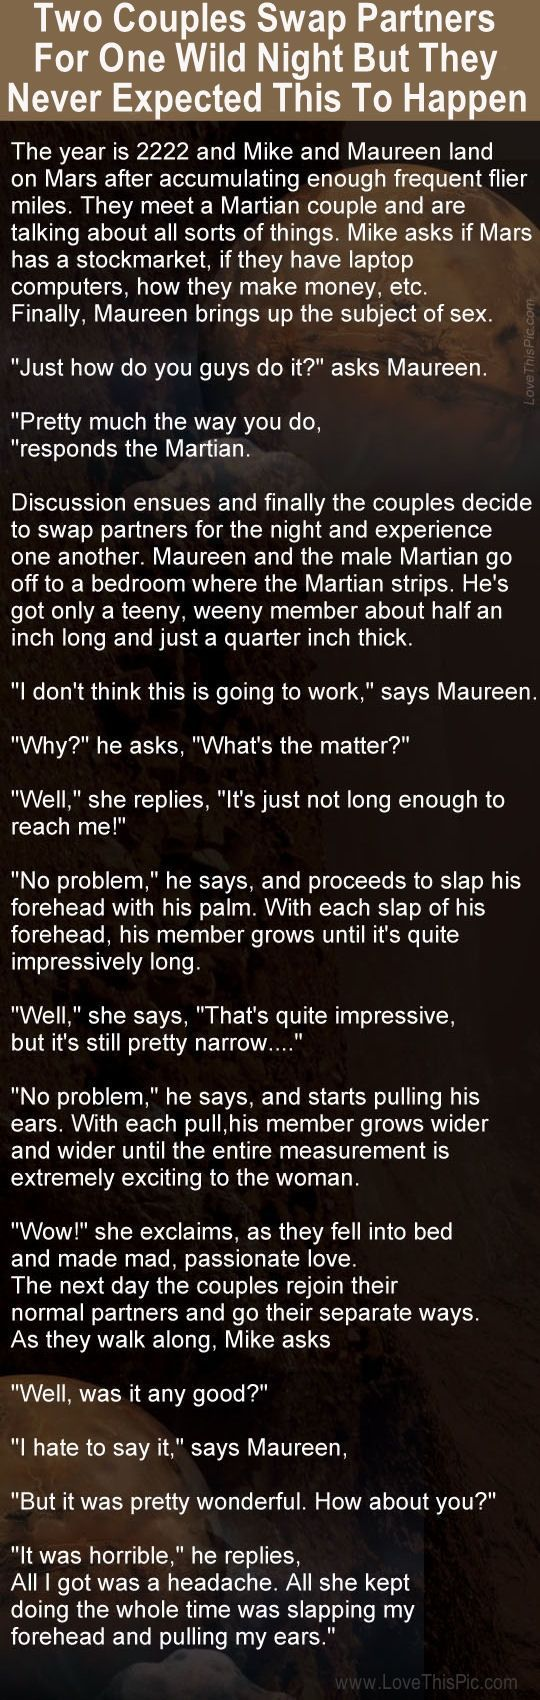 Wife Swapping Quotes : swapping, quotes, Couples, Partners, Night, Weren't, Expecting, This..., Stories,, Funny, Quotes,, Marriage, Humor